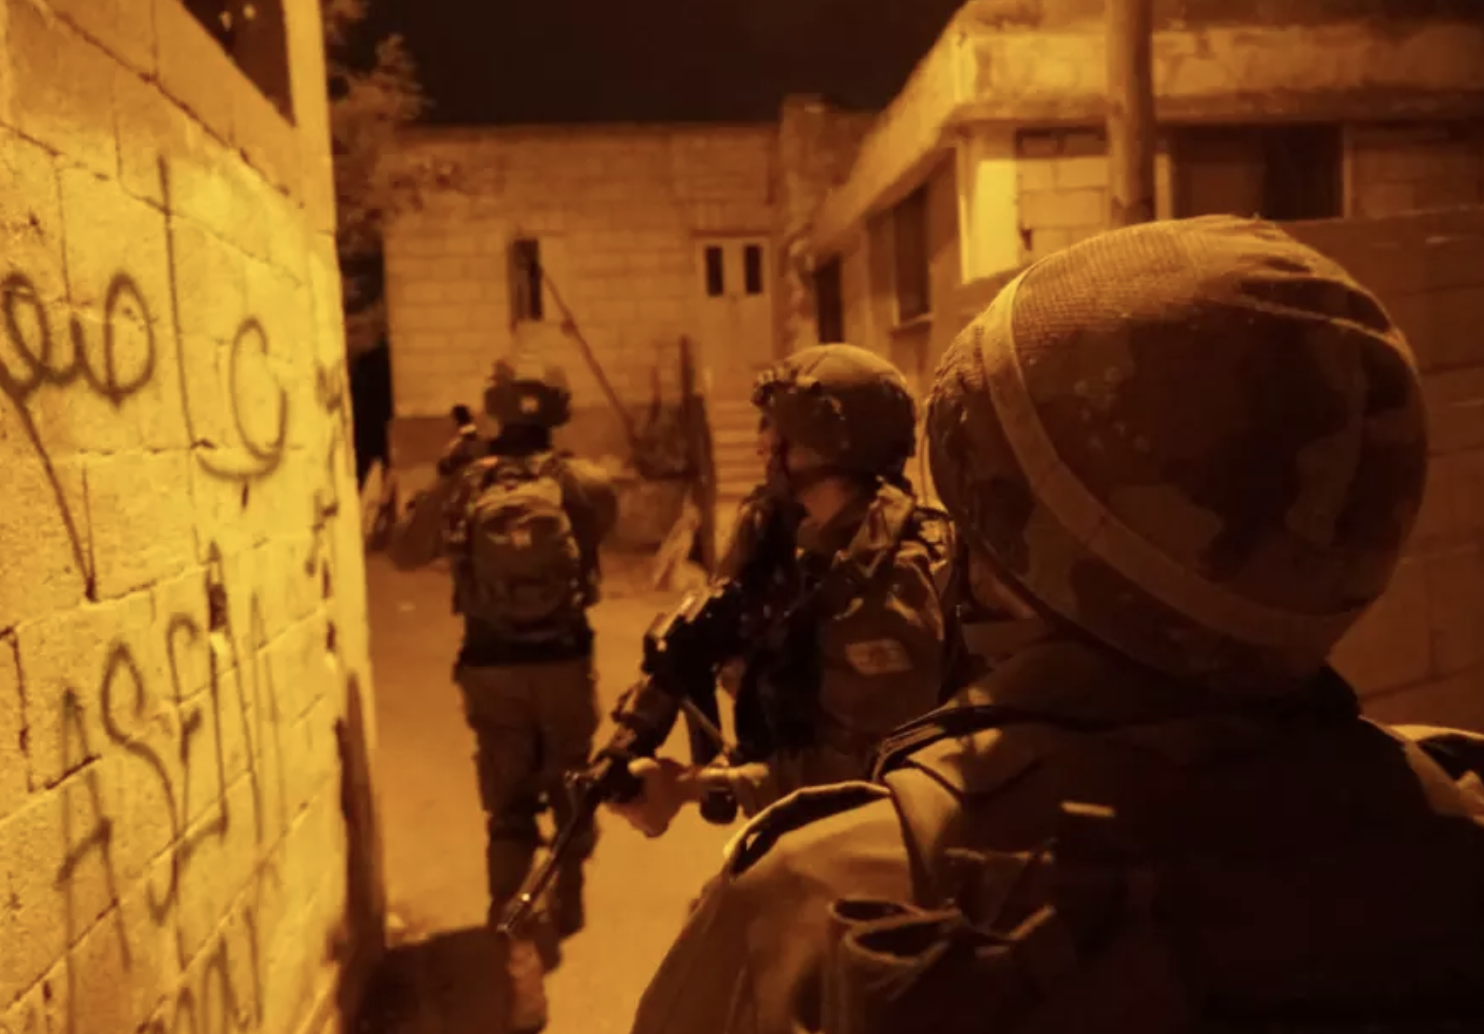 IDF soldiers seen during overnight activity, July 28, 2018. (photo credit: IDF SPOKESPERSON'S UNIT)